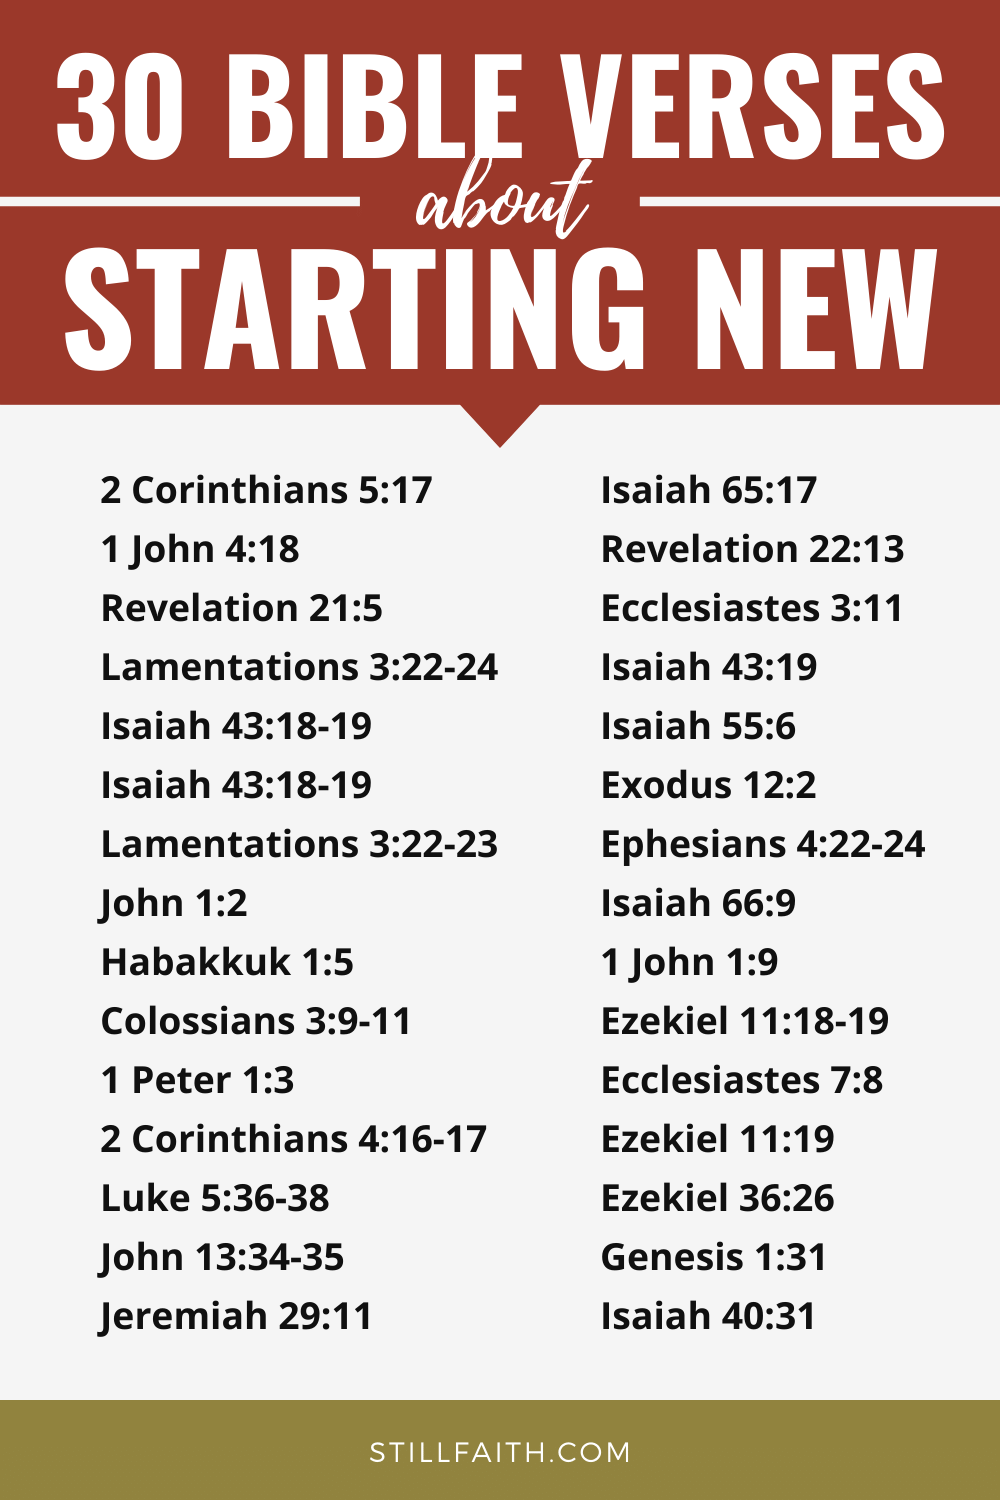 231 Bible Verses about Starting New